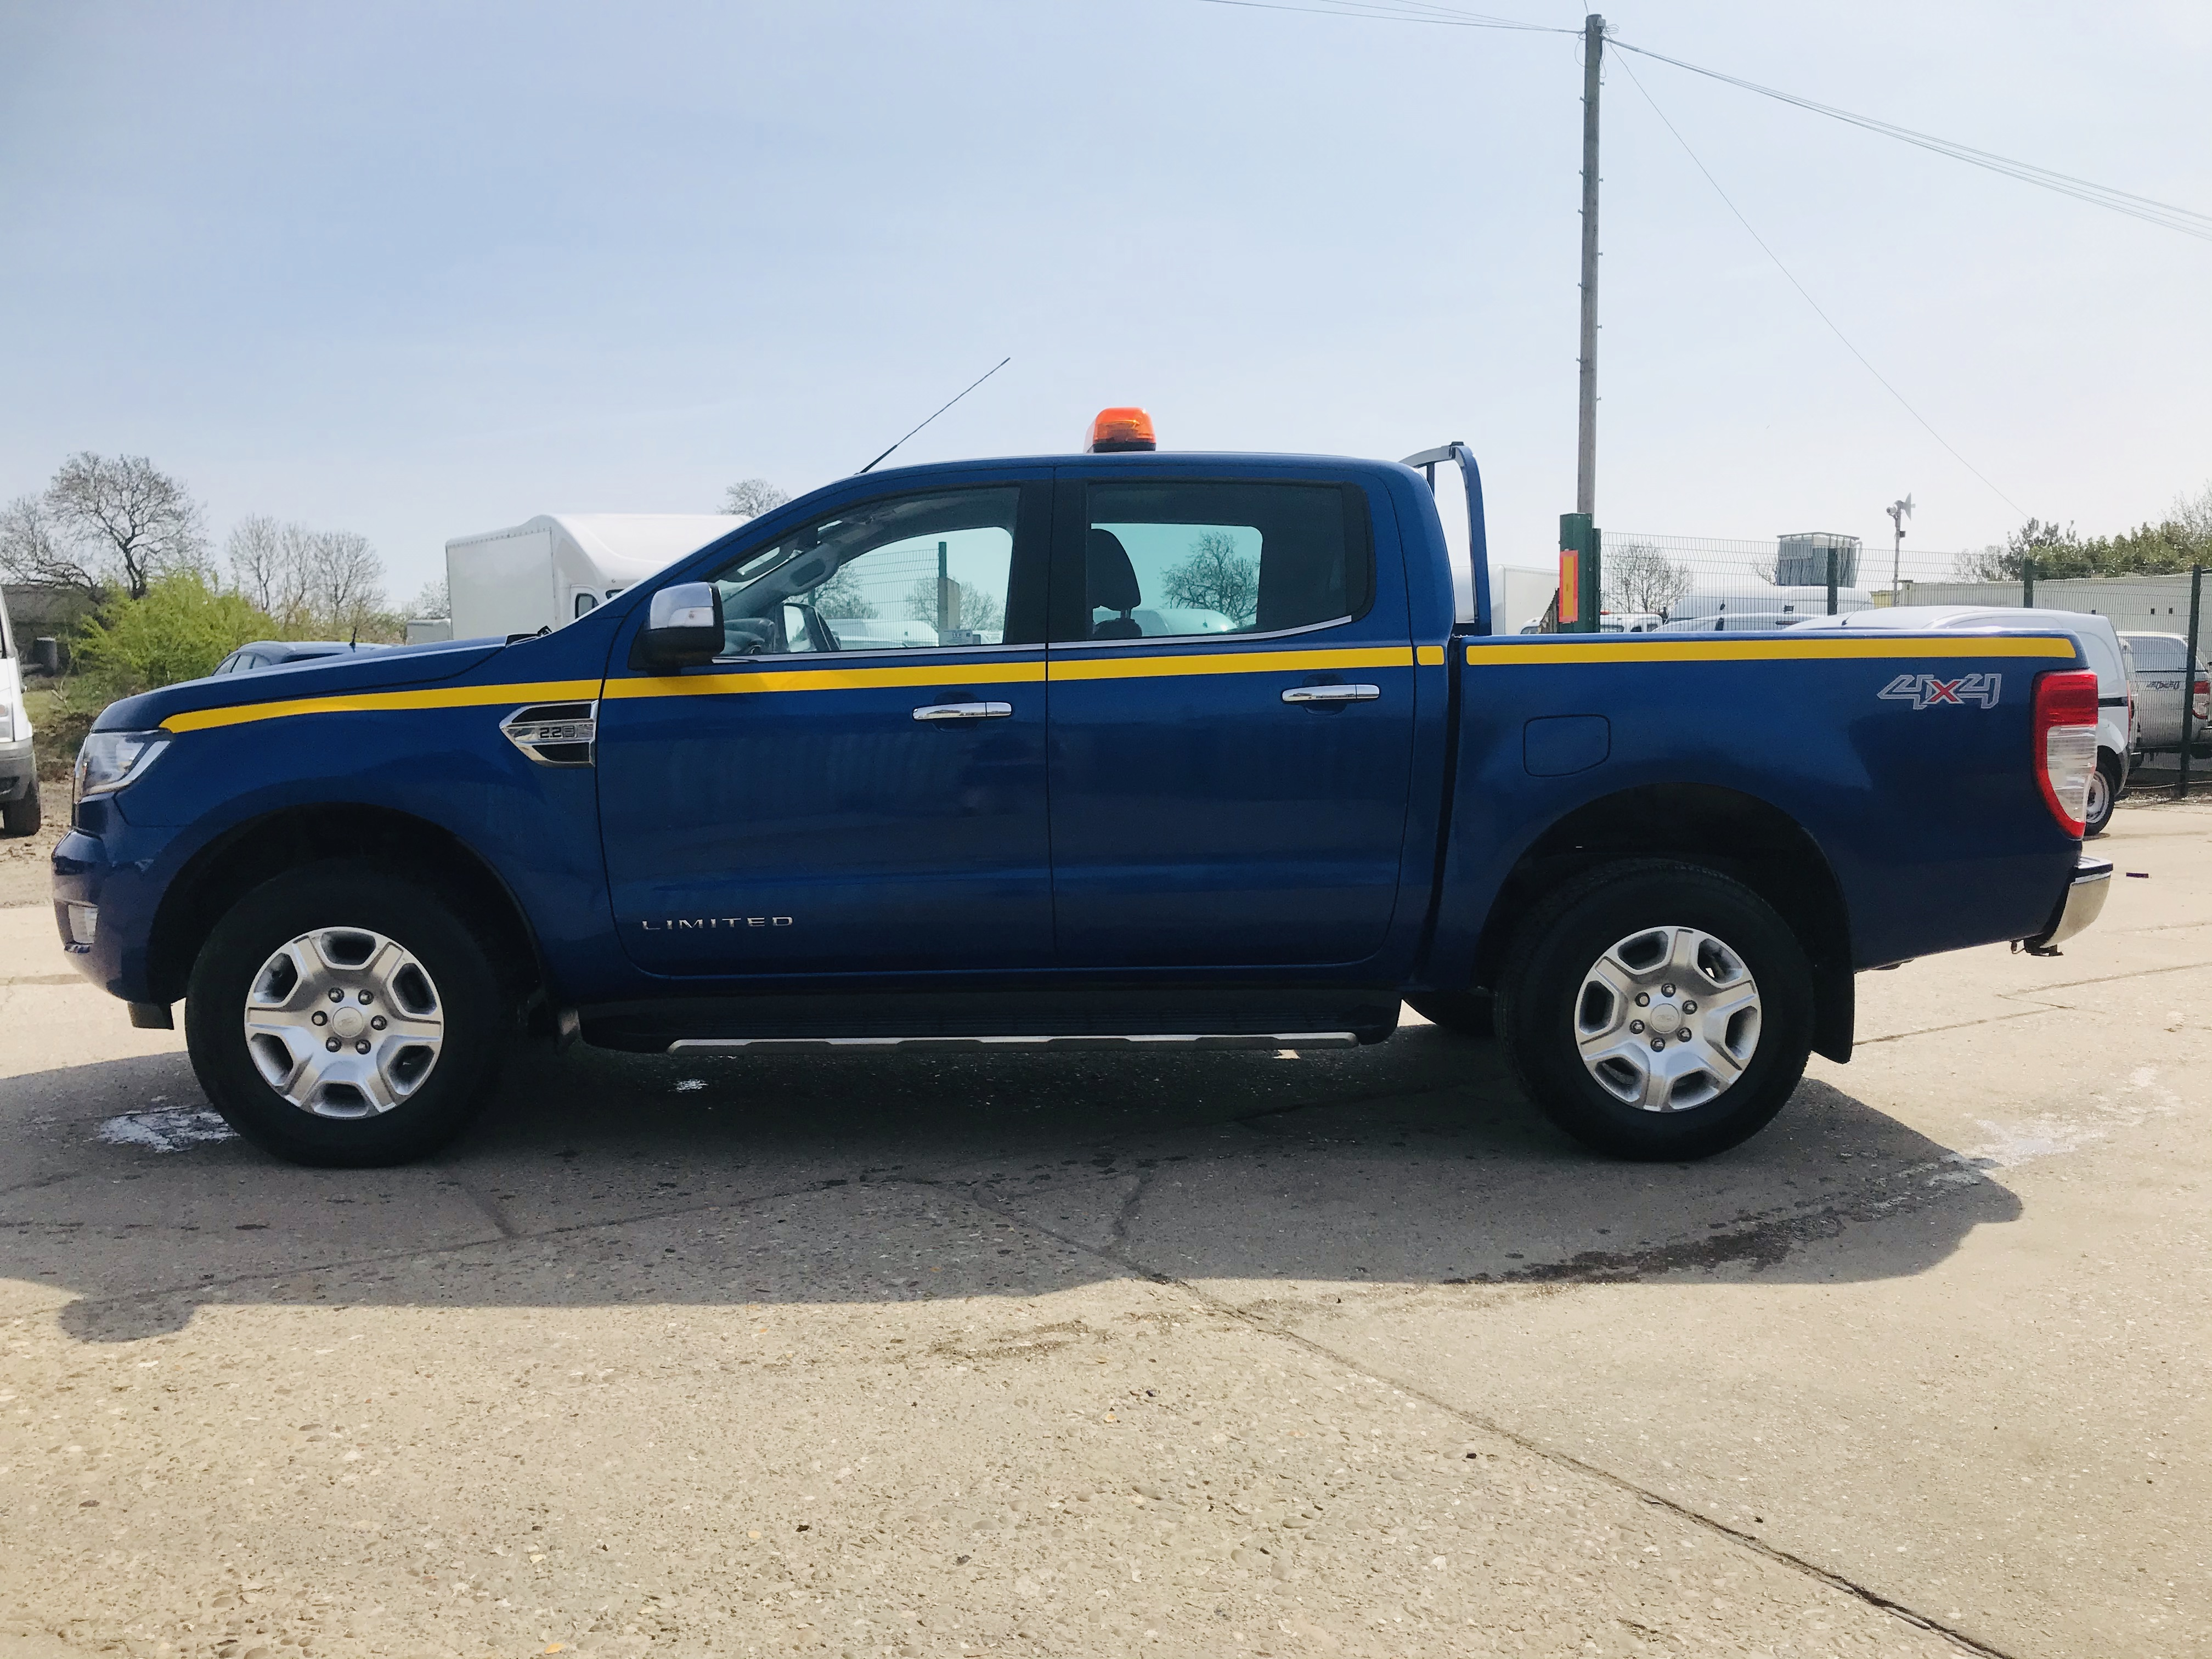 """ON SALE FORD RANGER 2.2TDCI """"LIMITED"""" D/C PICK UP (17 REG) 1 OWNER FSH - FULL LEATHER - CLIMATE & AC - Image 8 of 38"""